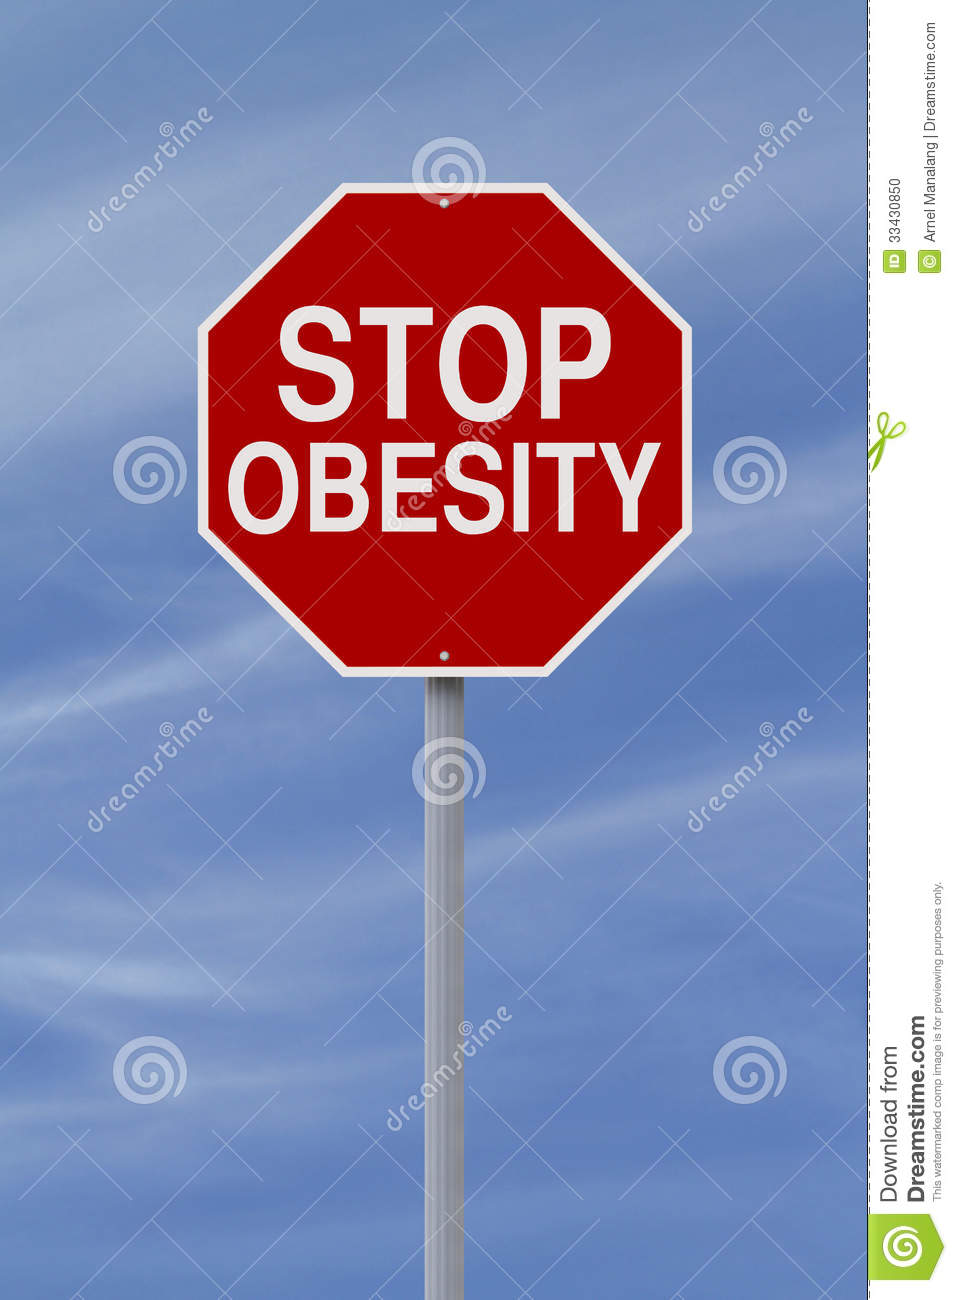 stop obesity stock photo